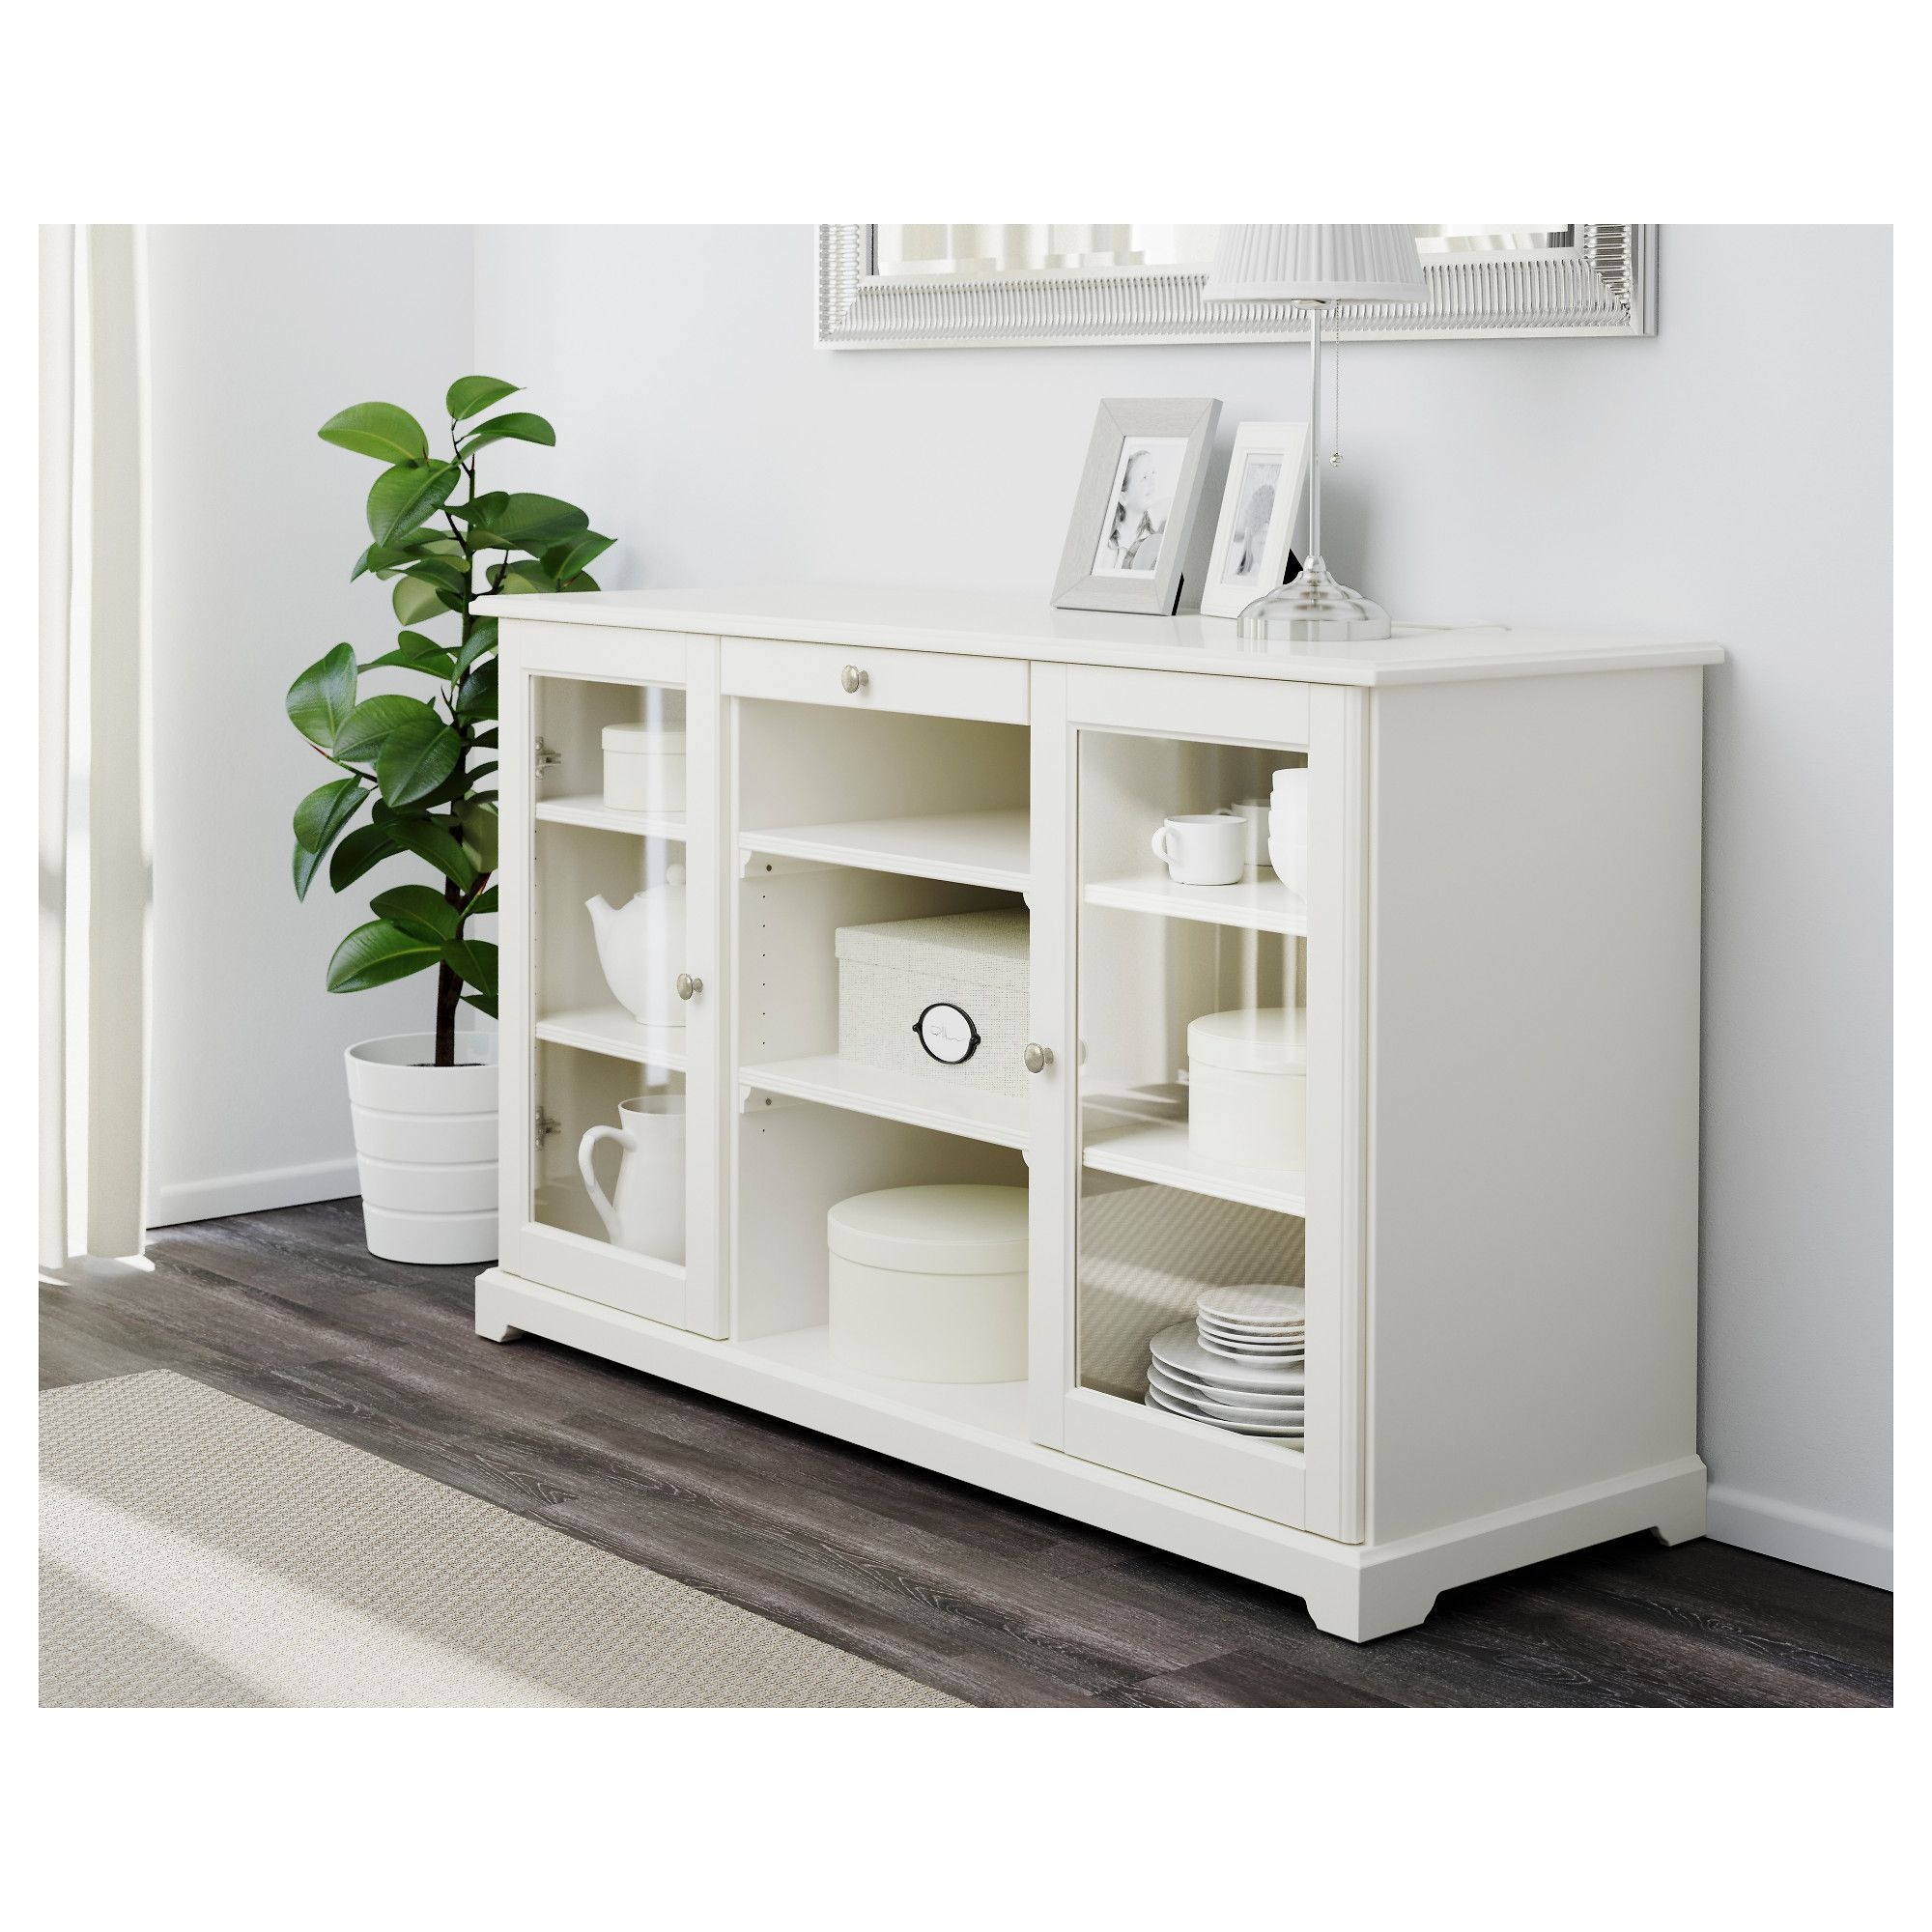 Ikea Anrichte Weiß Liatorp Sideboard White Time To Redecorate Liatorp Ikea